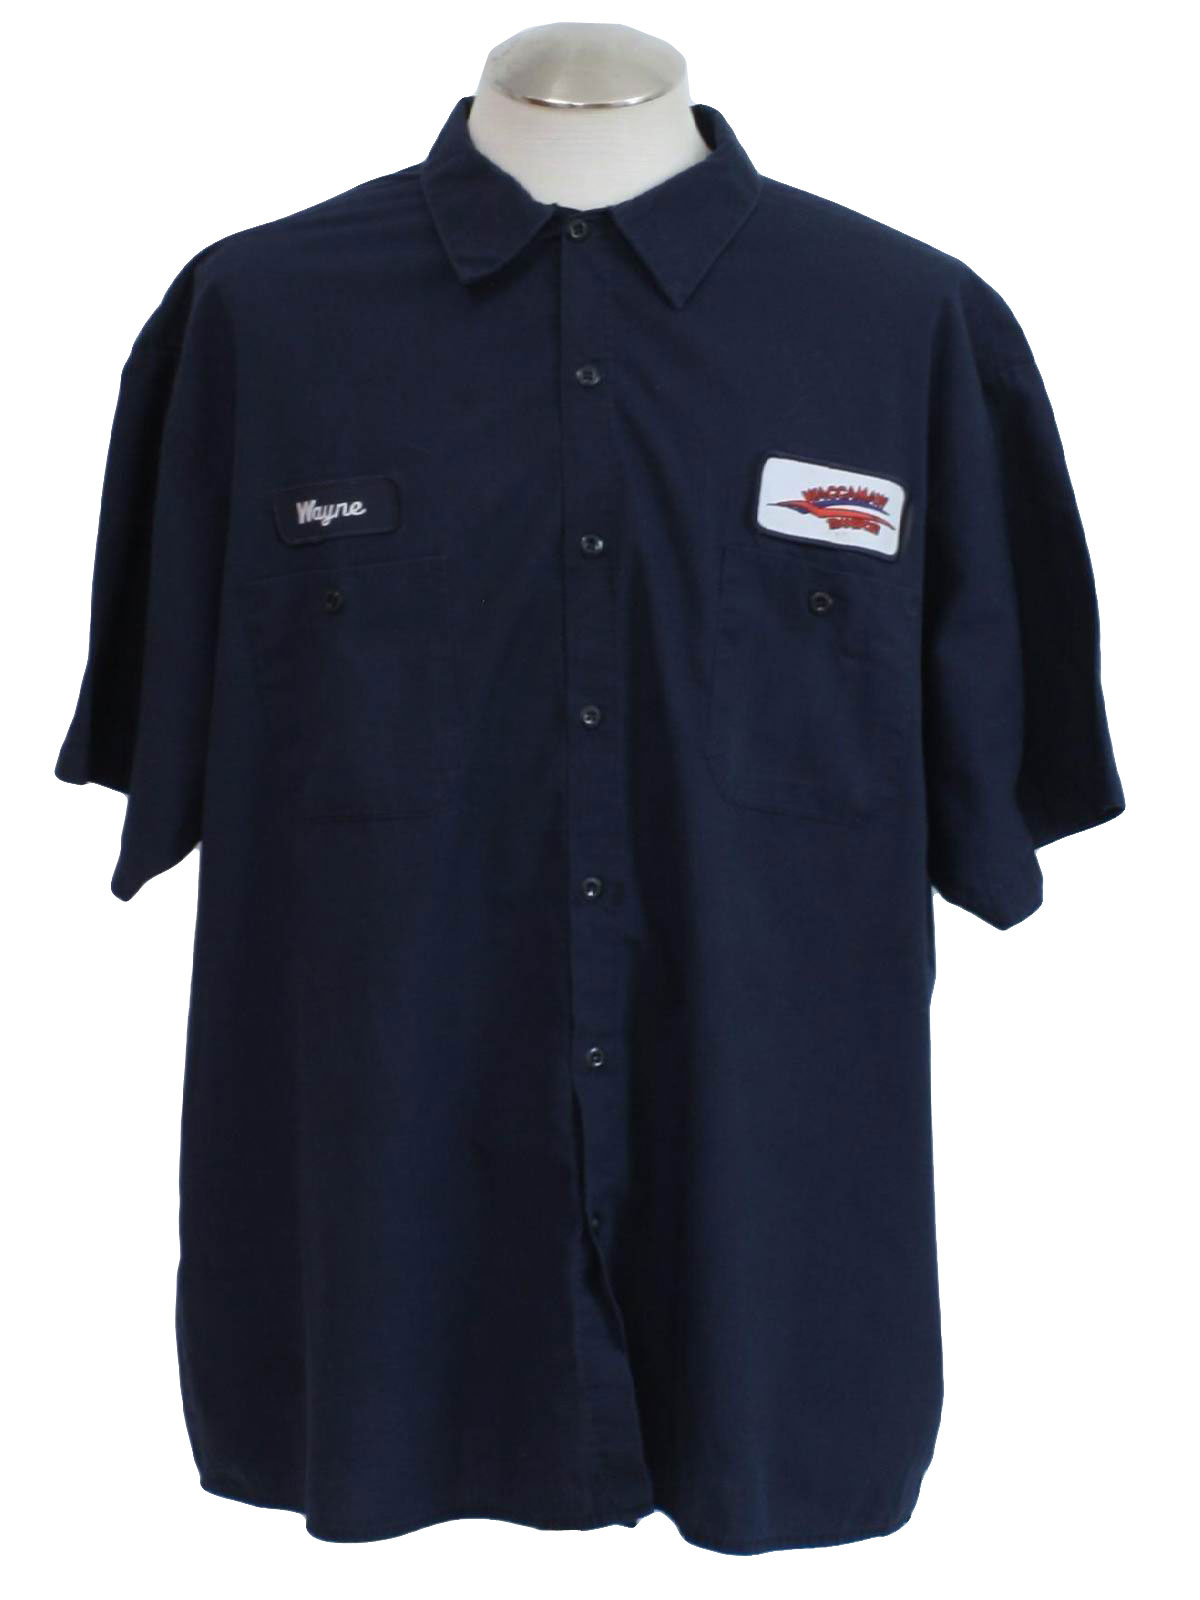 1990 39 s vintage cintas shirt 90s cintas mens navy blue for Blue button up work shirt